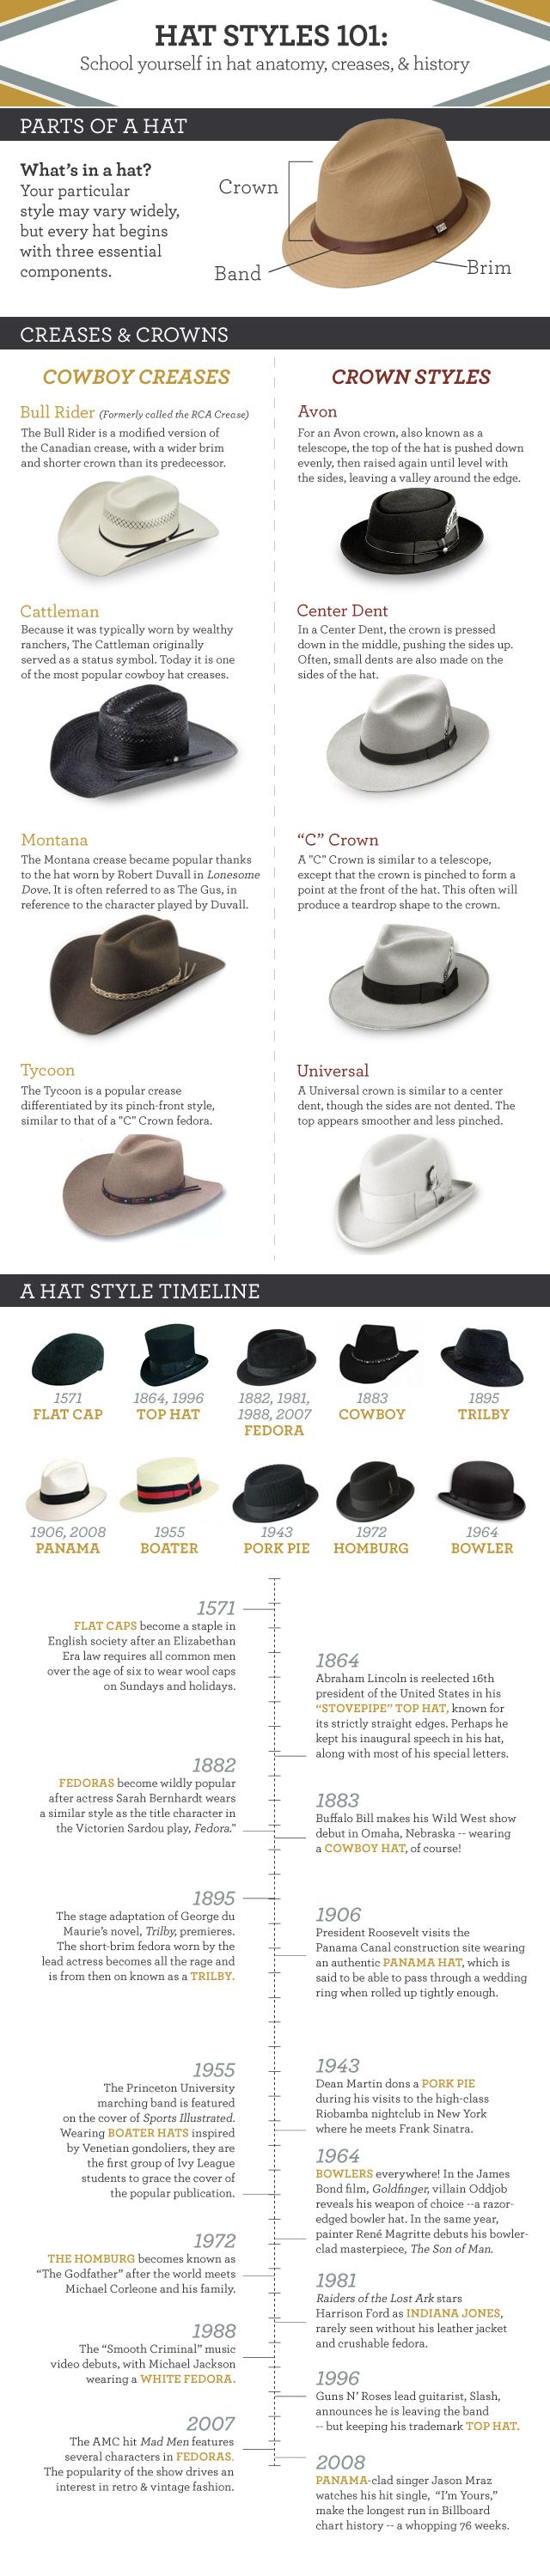 So, according to this infographic, my personal favorite style of hat (flat cap) is 400+ year old style.